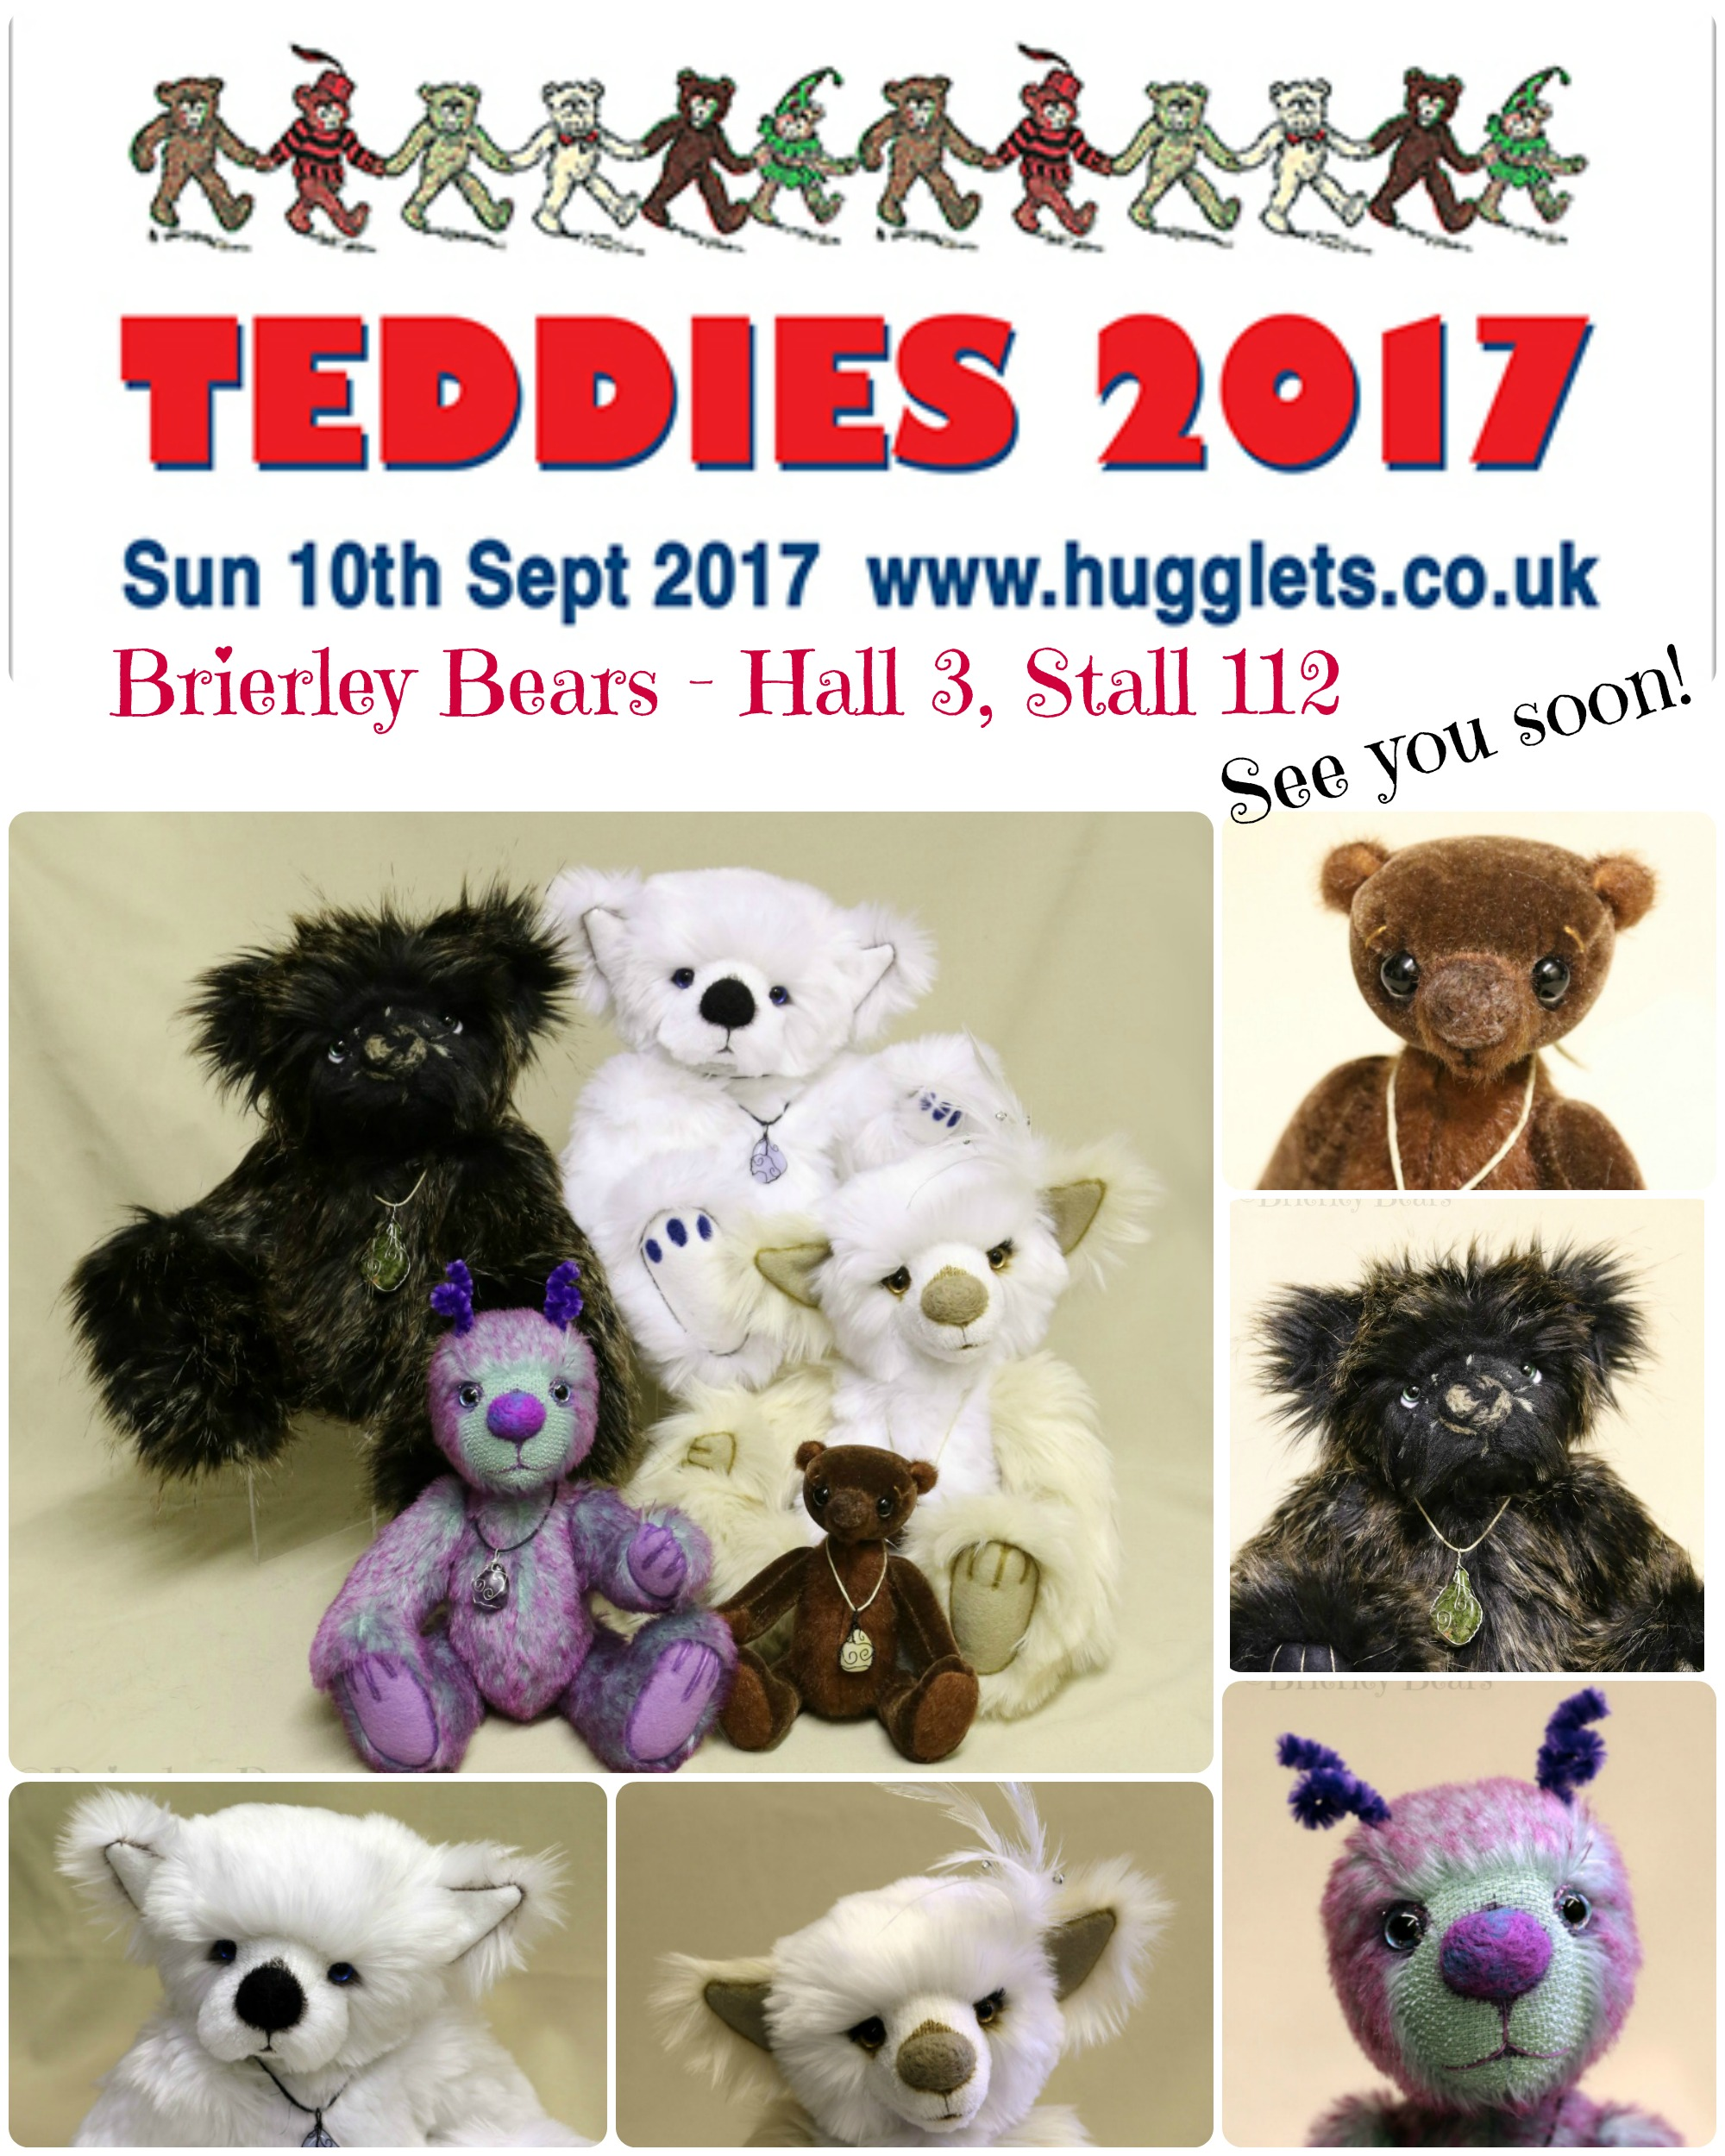 Hugglets Teddies Festival 2017 Preview